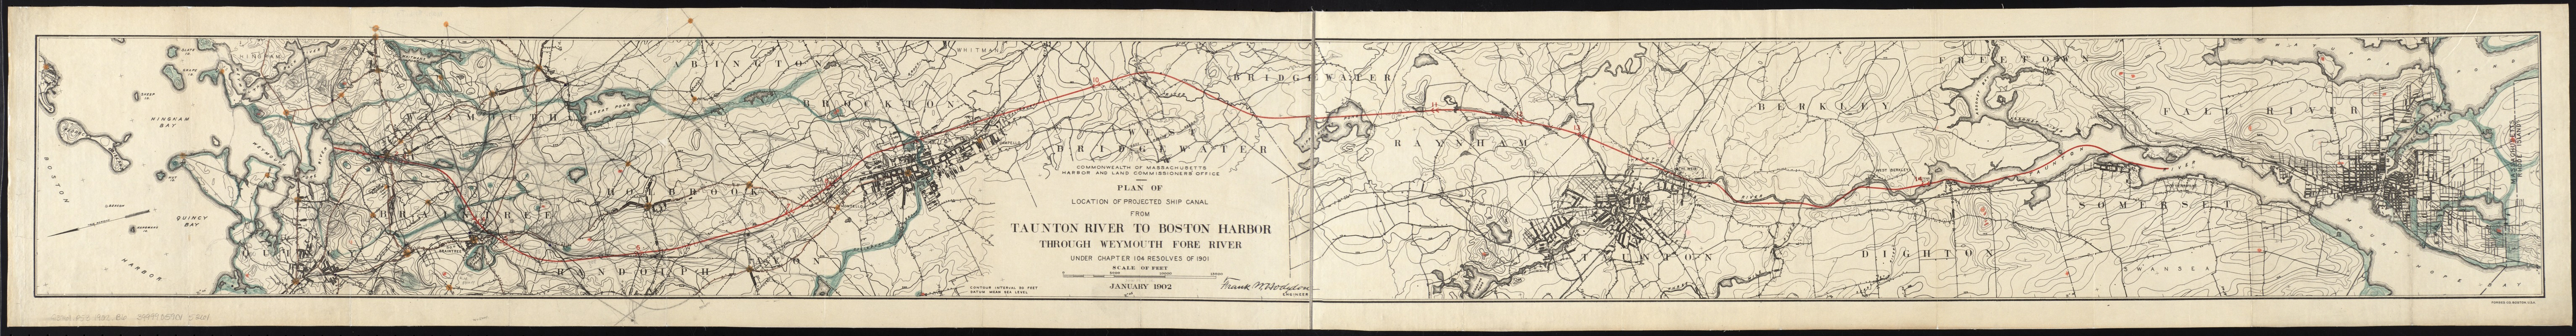 Plan of location of projected ship canal from Taunton River to Boston Harbor, through Weymouth Fore River ... Frank W. Hodgdon, engineer